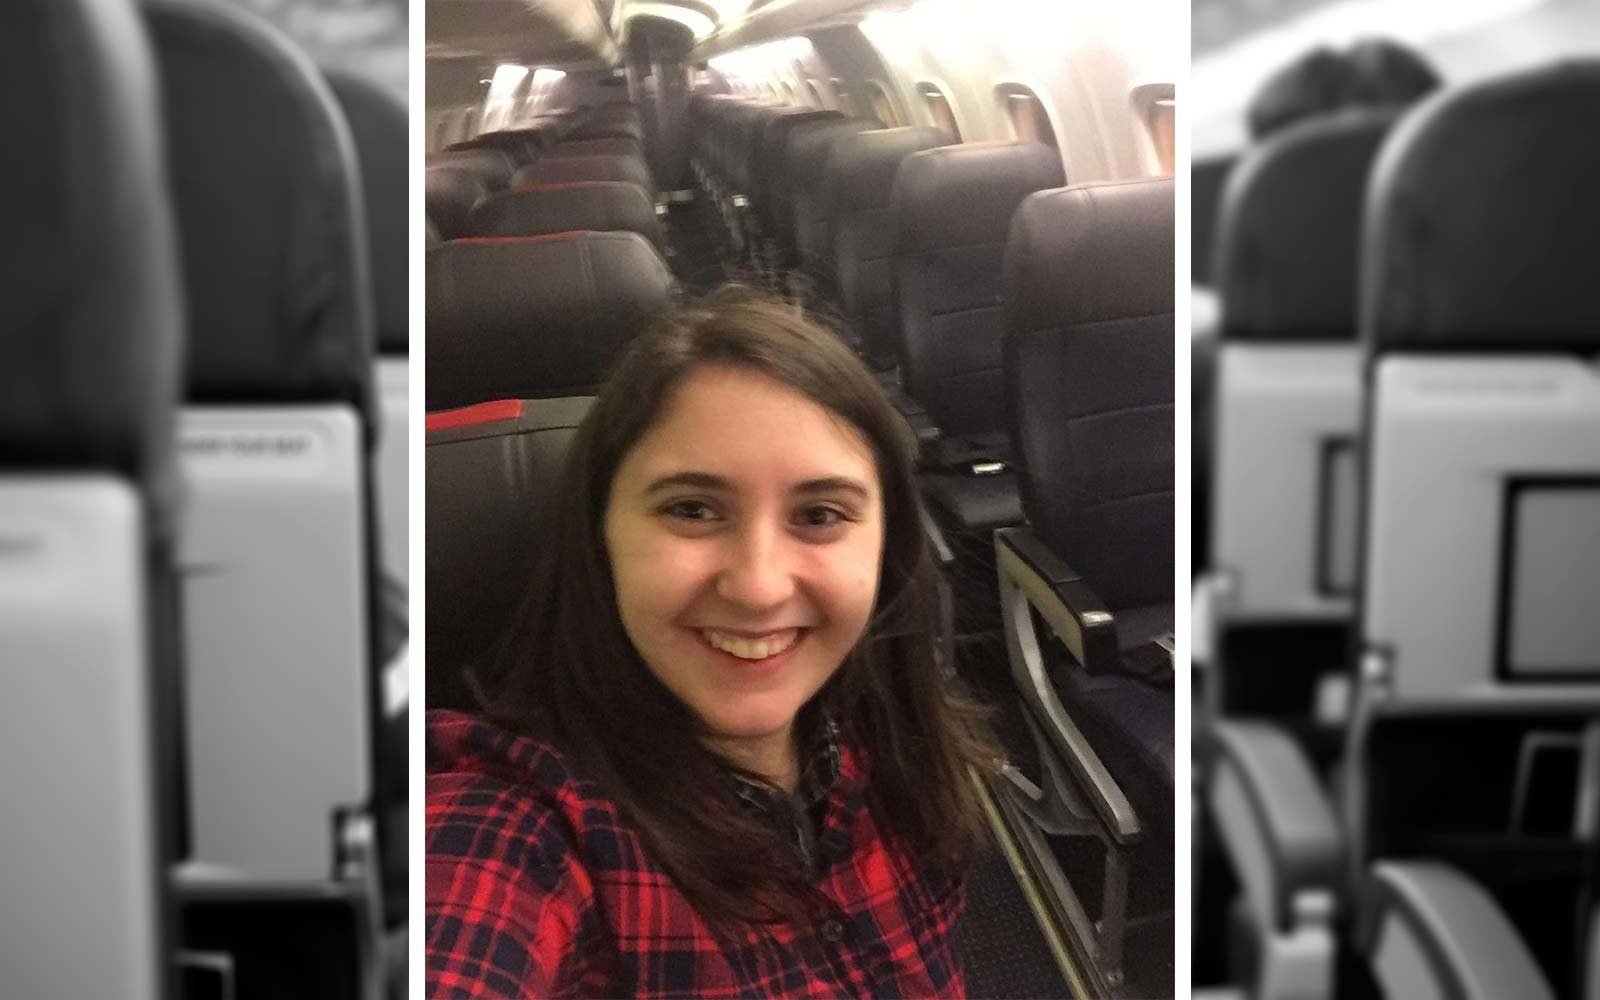 Woman Gets Entire Plane All to Herself